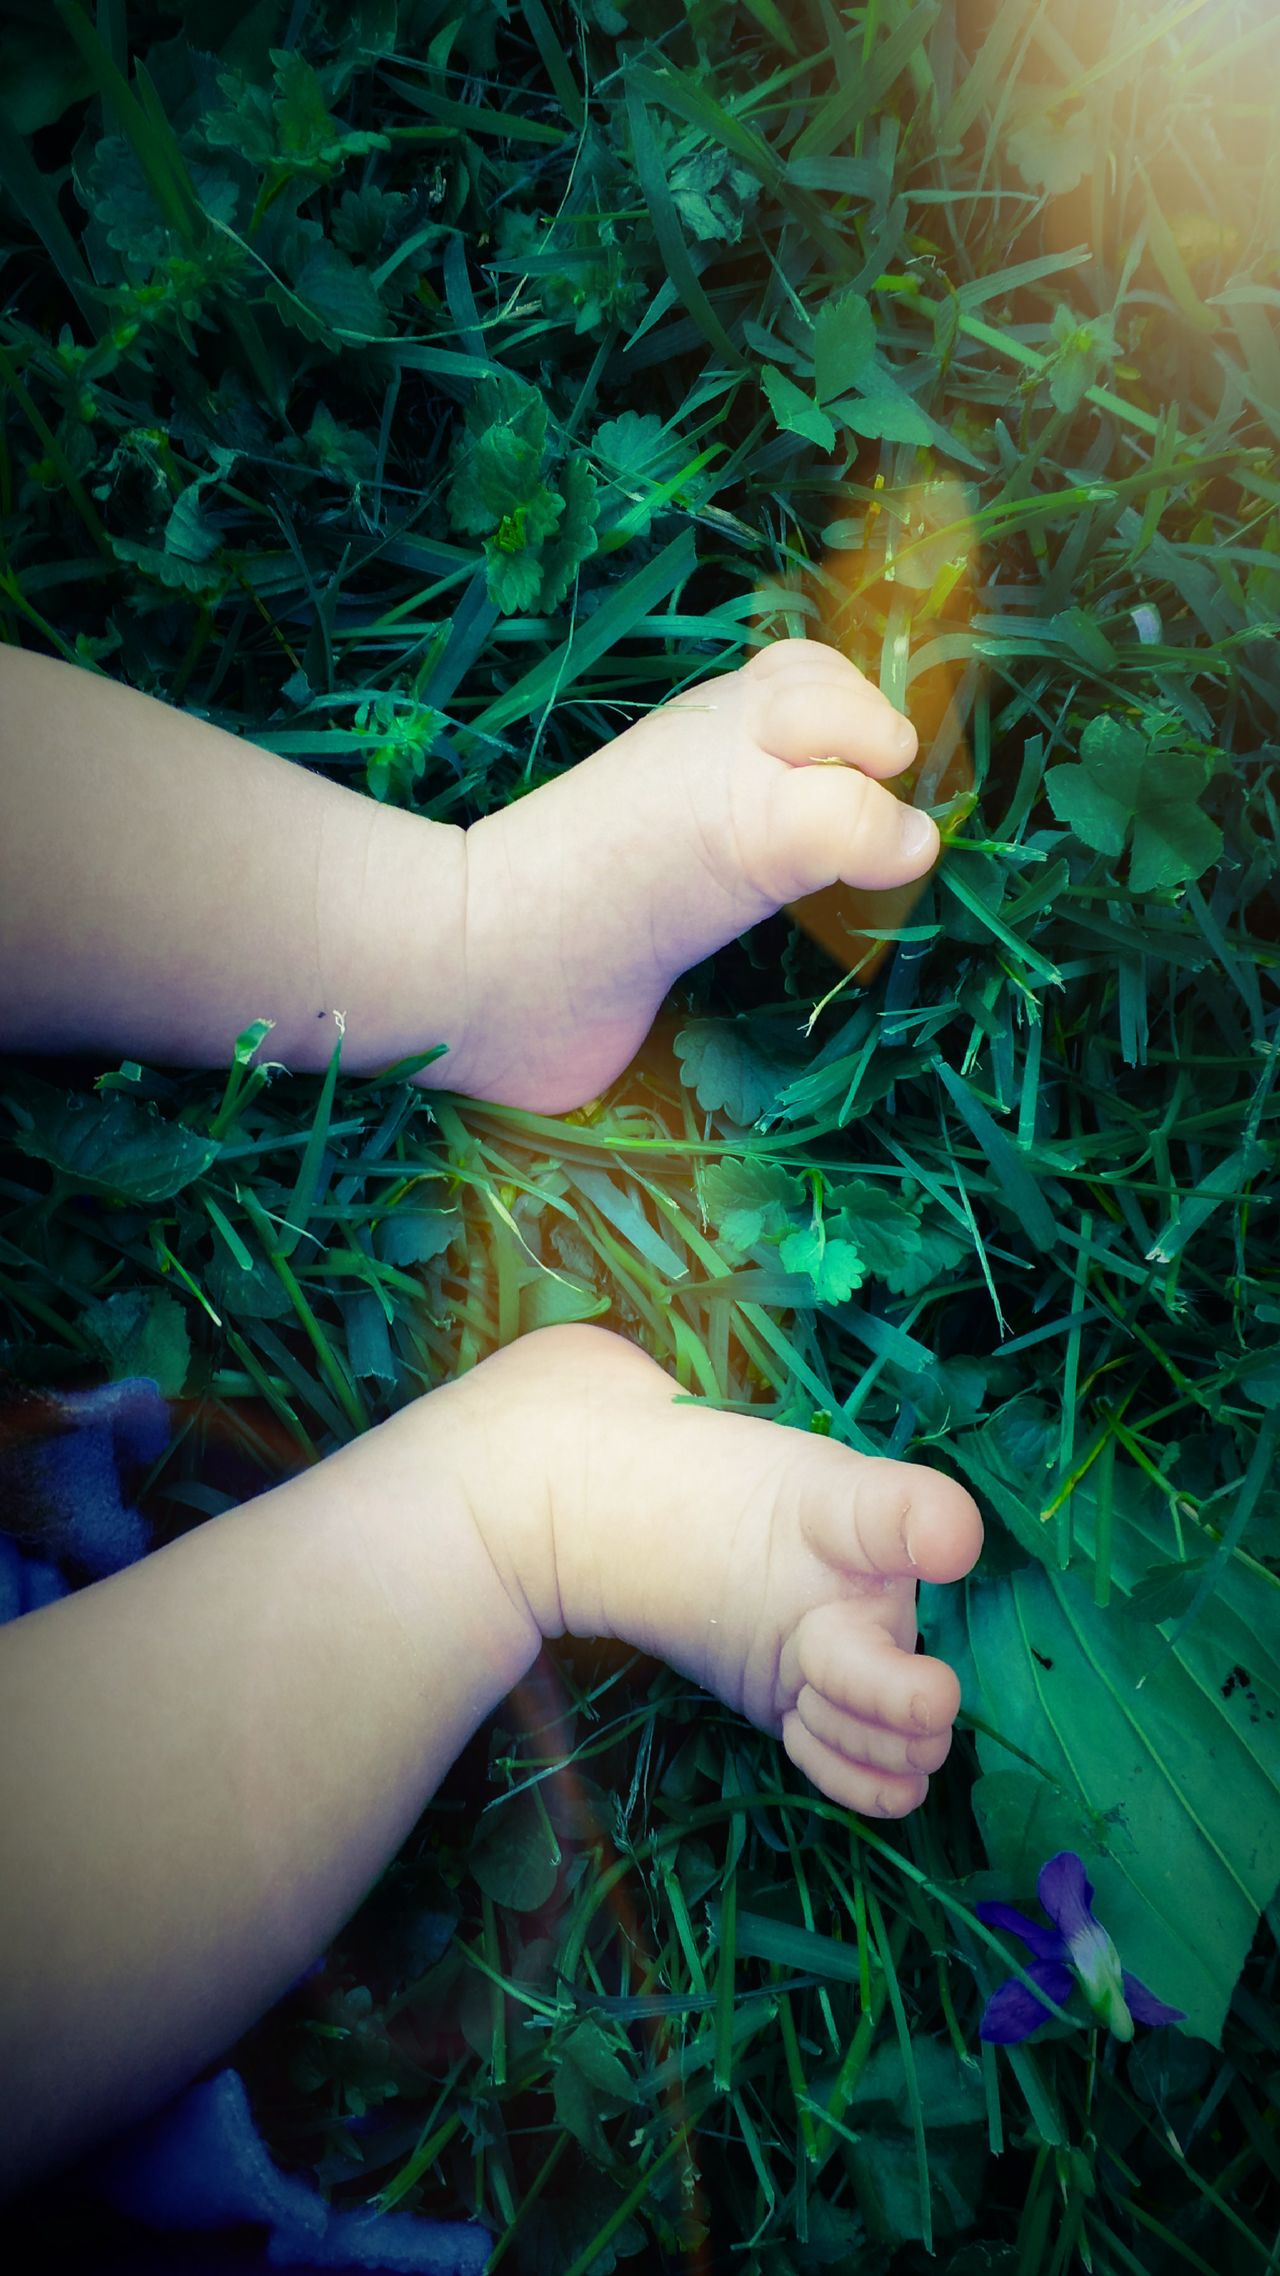 First time grass user. Human Body Part People Plant Close-up Outdoors Day Lifestyles Nature Explore Beauty In Nature Nature Rural Life Baby Babygirl Baby Feet Toes Indiana Milltown Green Purple Clover 小孩 Half Asian Spring Grass